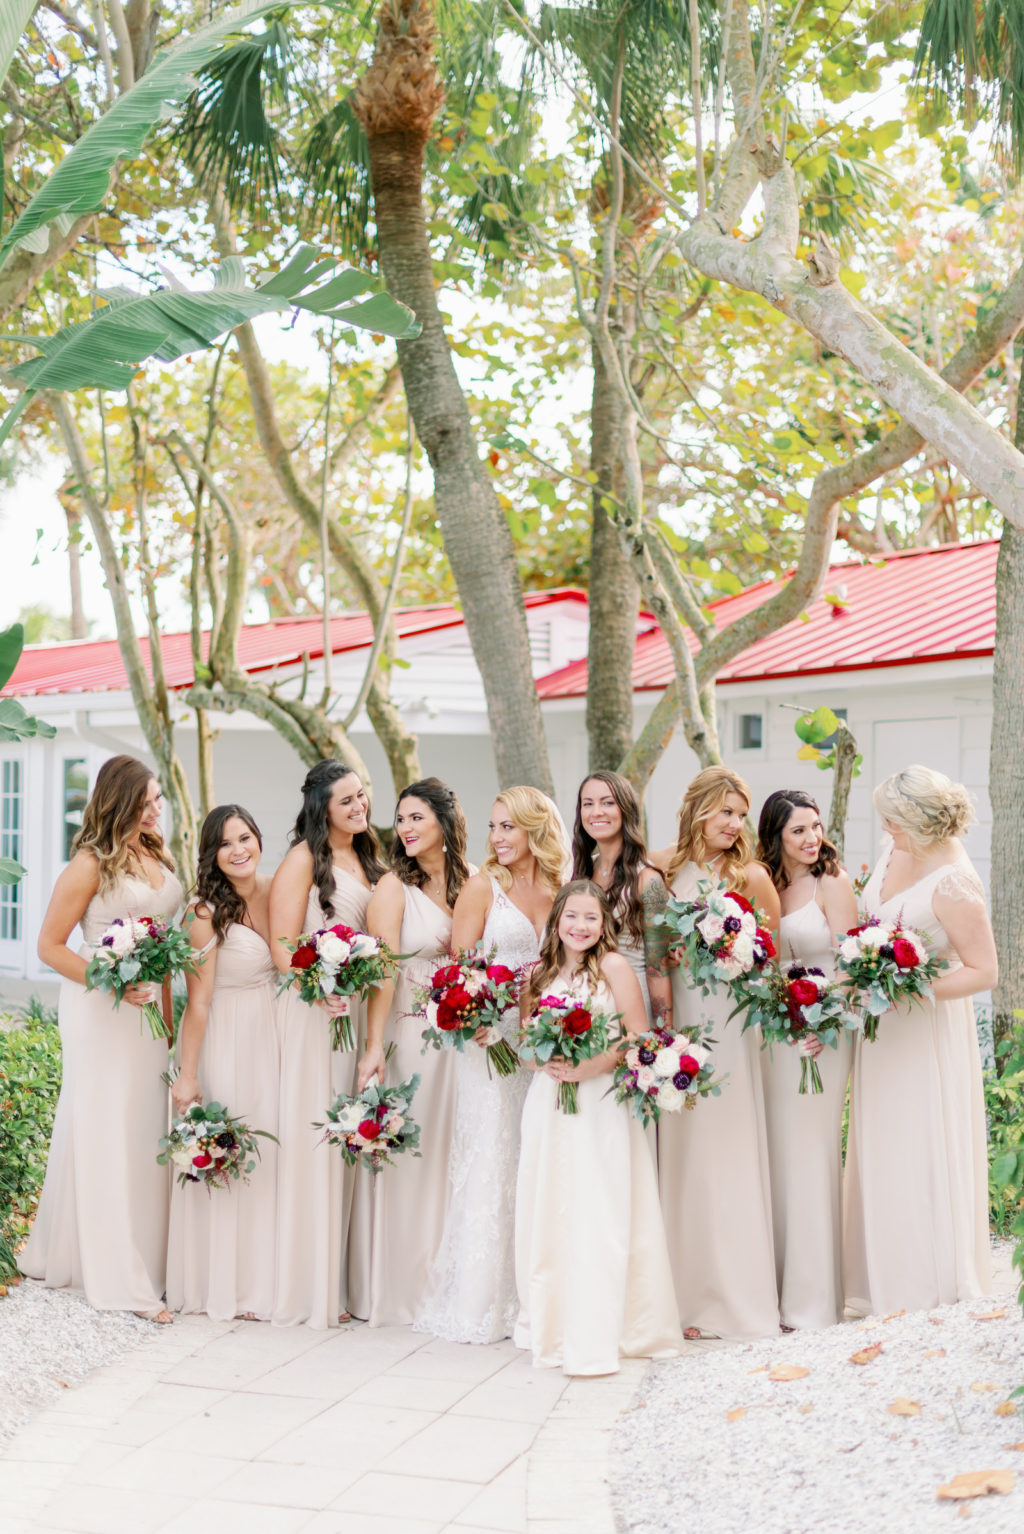 Tampa Bay Bride with Bridesmaids in Champagne Dresses Holding Colorful Red and Ivory with Greenery Floral Bouquets   Tampa Bay Wedding Hair and Makeup Michele Renee the Studio   Bridesmaids Dresses Bella Bridesmaids